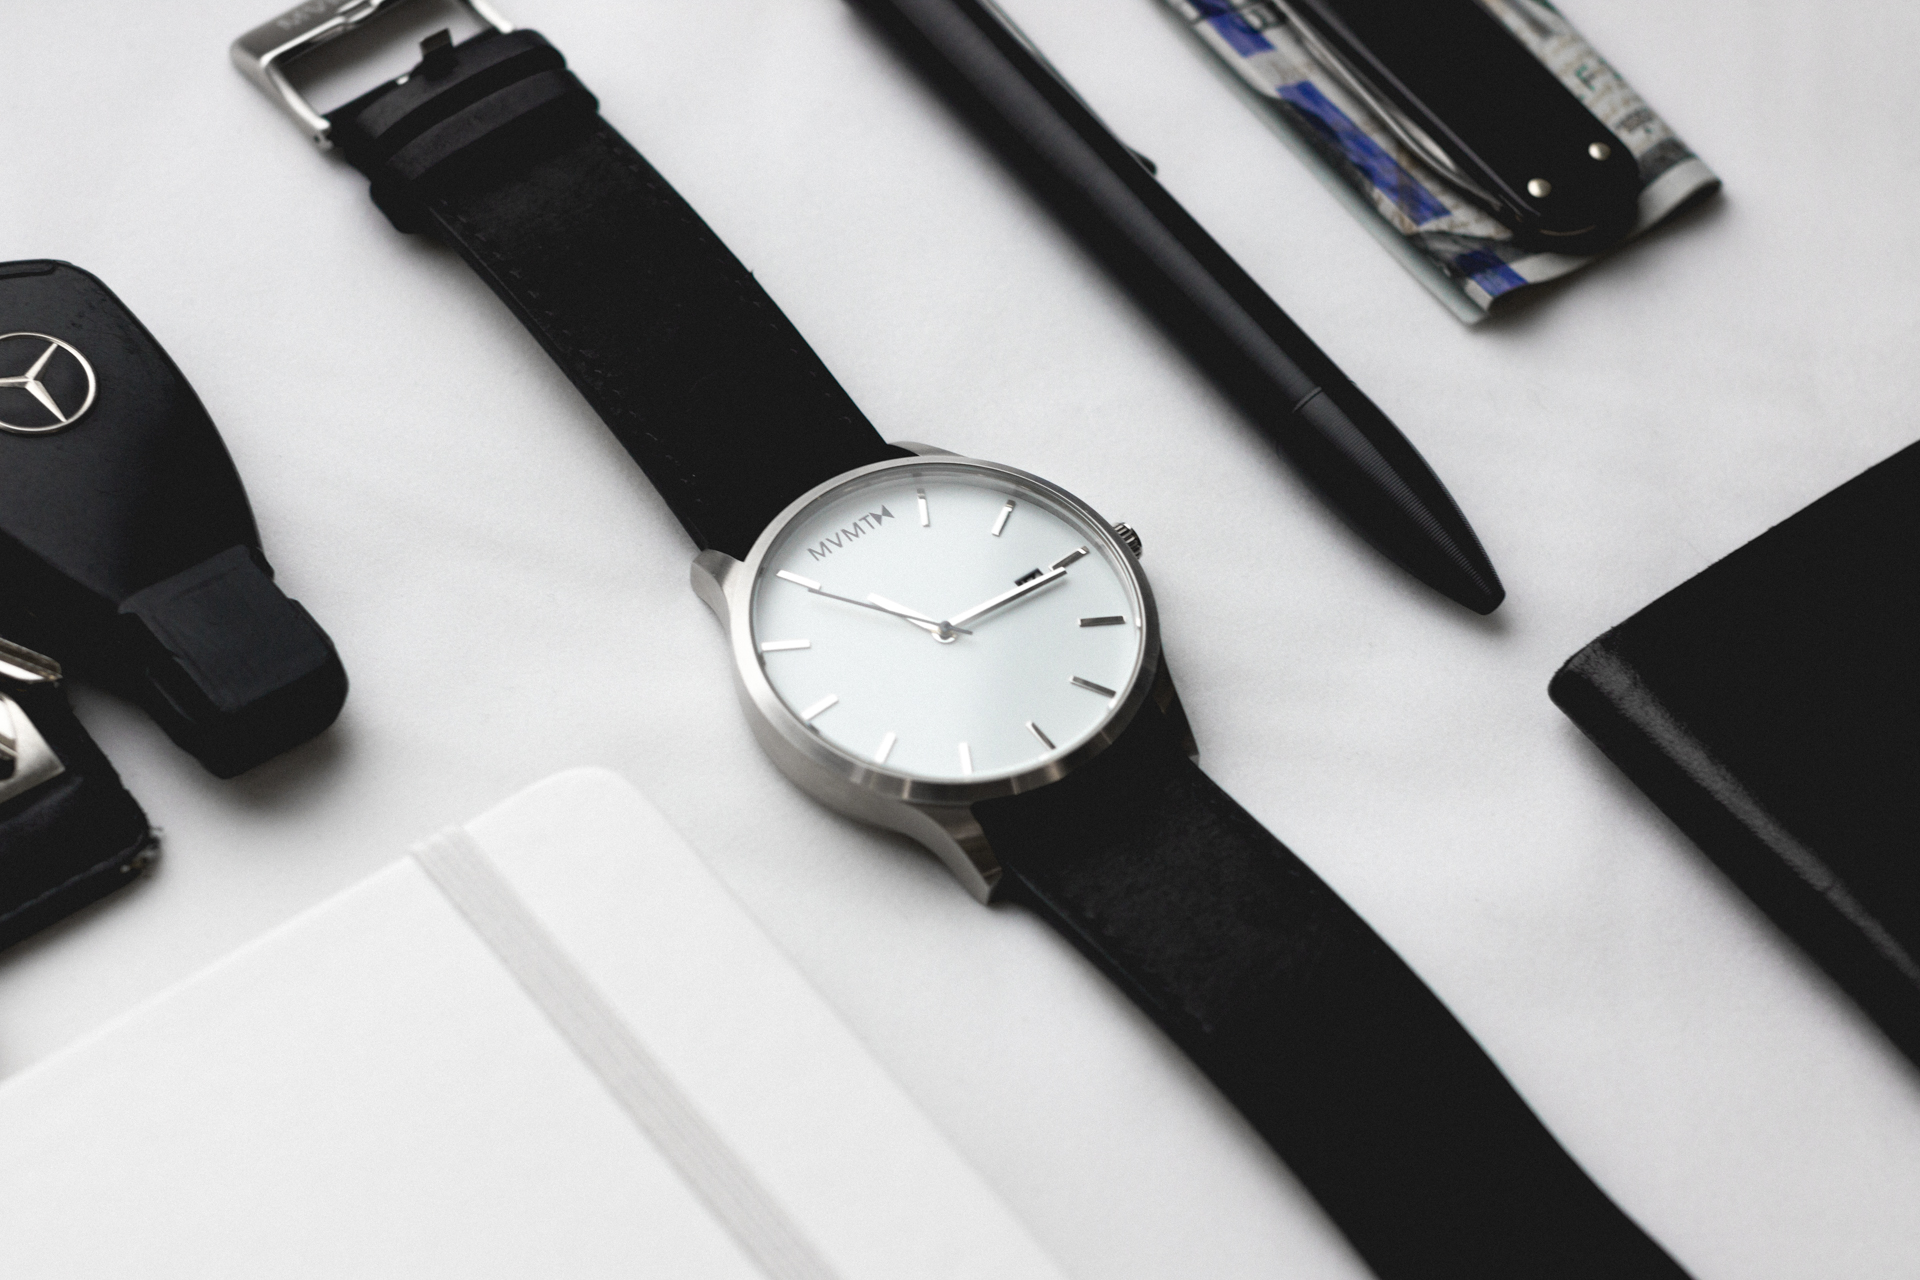 10 Minimalist Watches Under $200